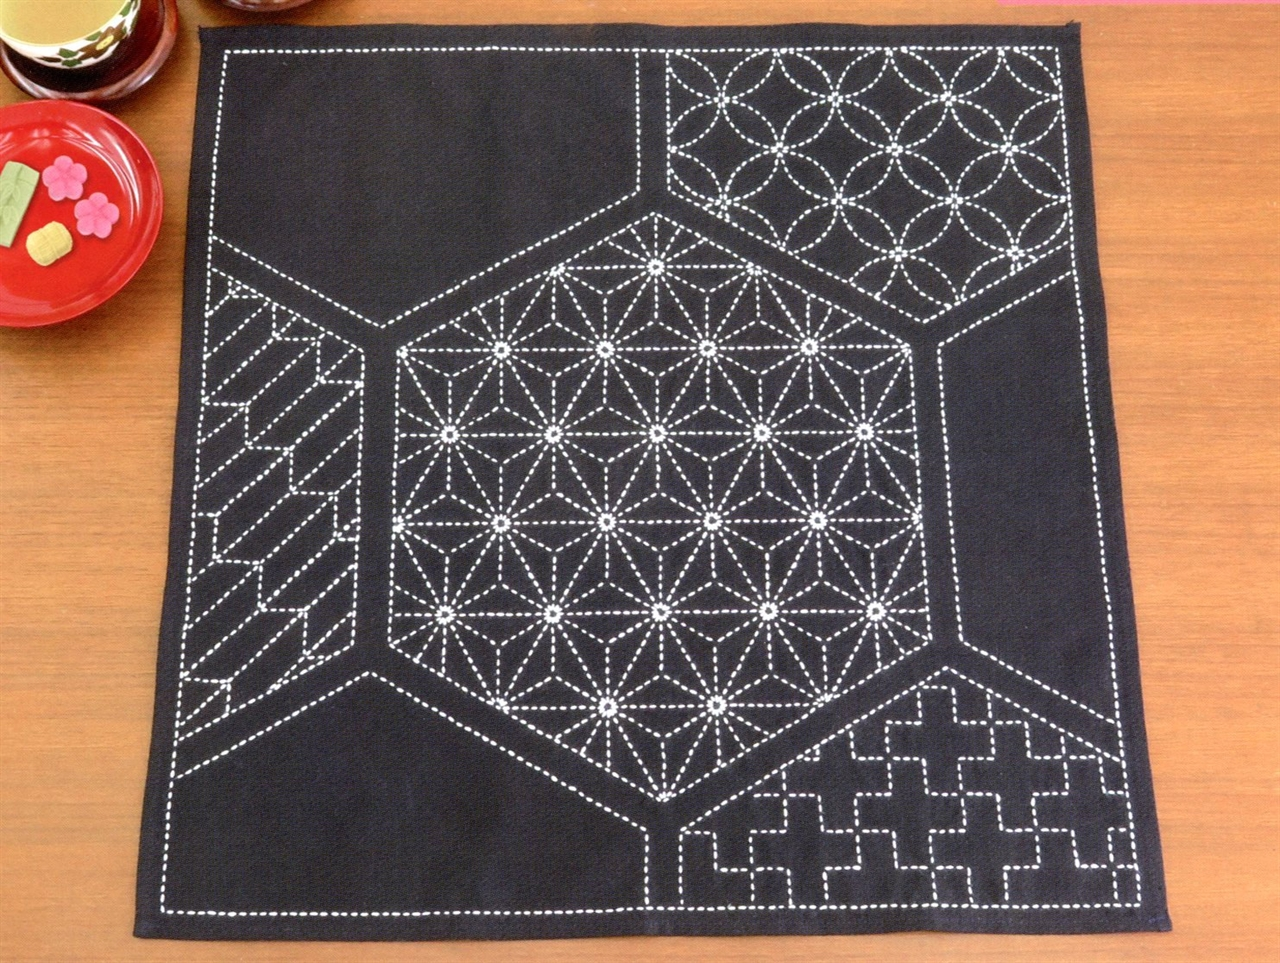 Sashiko Kit Table Topper or Furoshiki